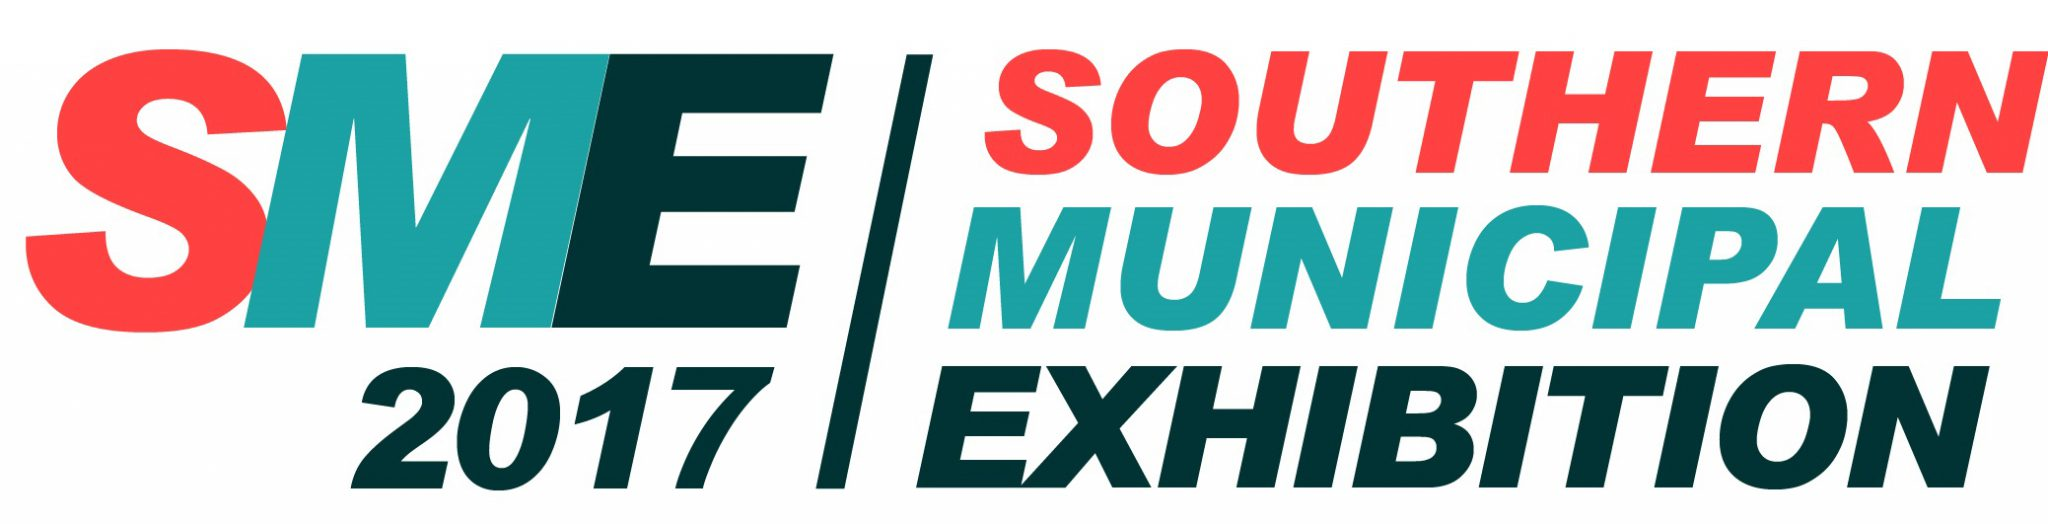 Southern Municipal Exhibition